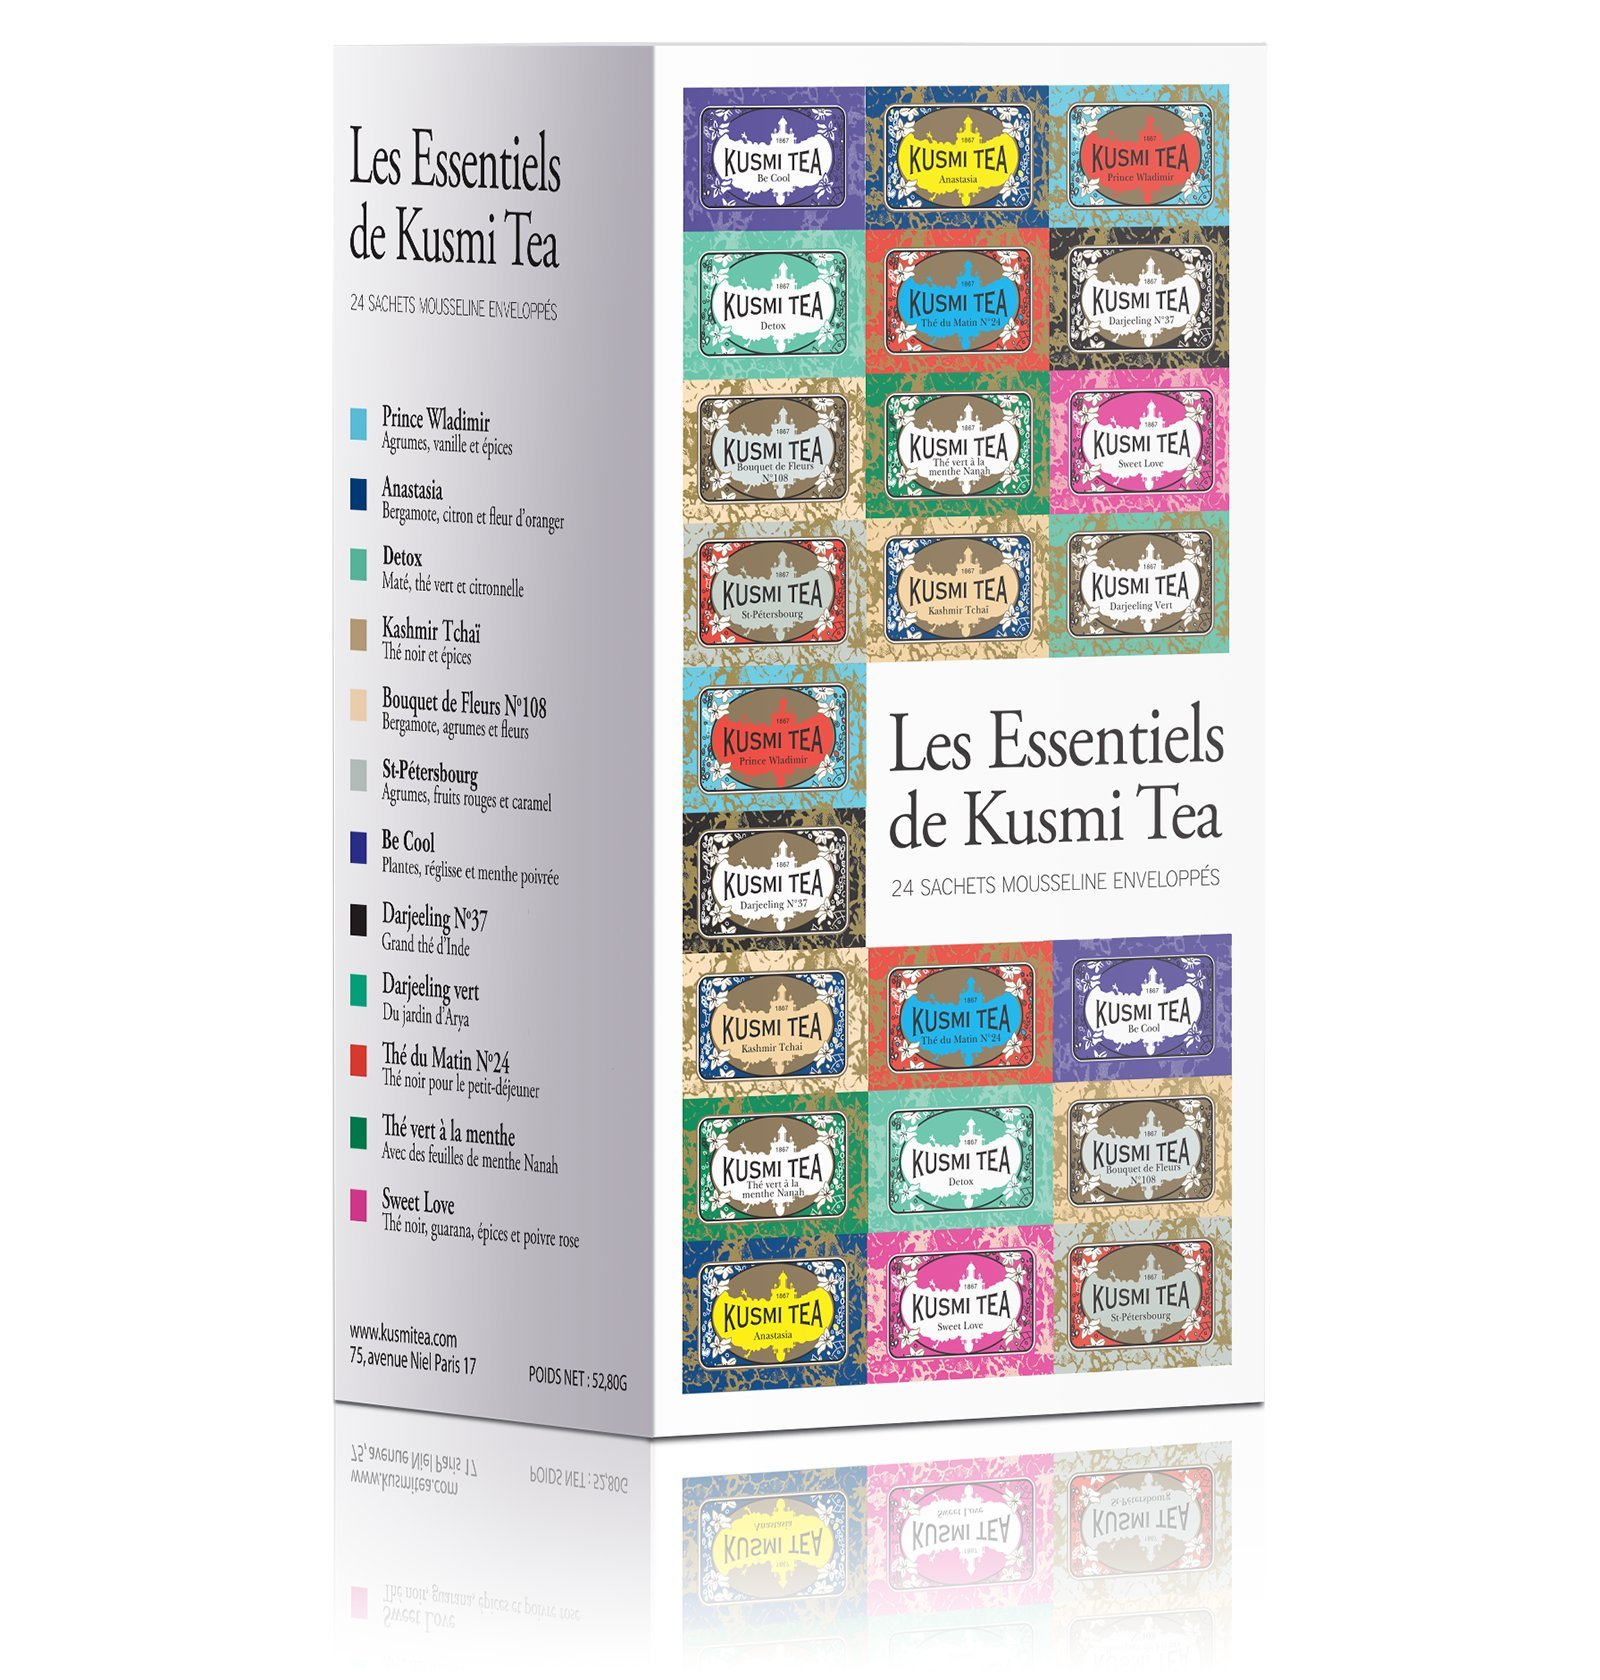 Kusmi Tea Essential Tea Assortment - Enjoy Our Best Tea Recipies From Earl Grey to Herbal Infusions Perfect Gift for Tea Lovers Feel Refreshed and Rejuvenated (12 Flavors 24 Muslin Tea Bags)